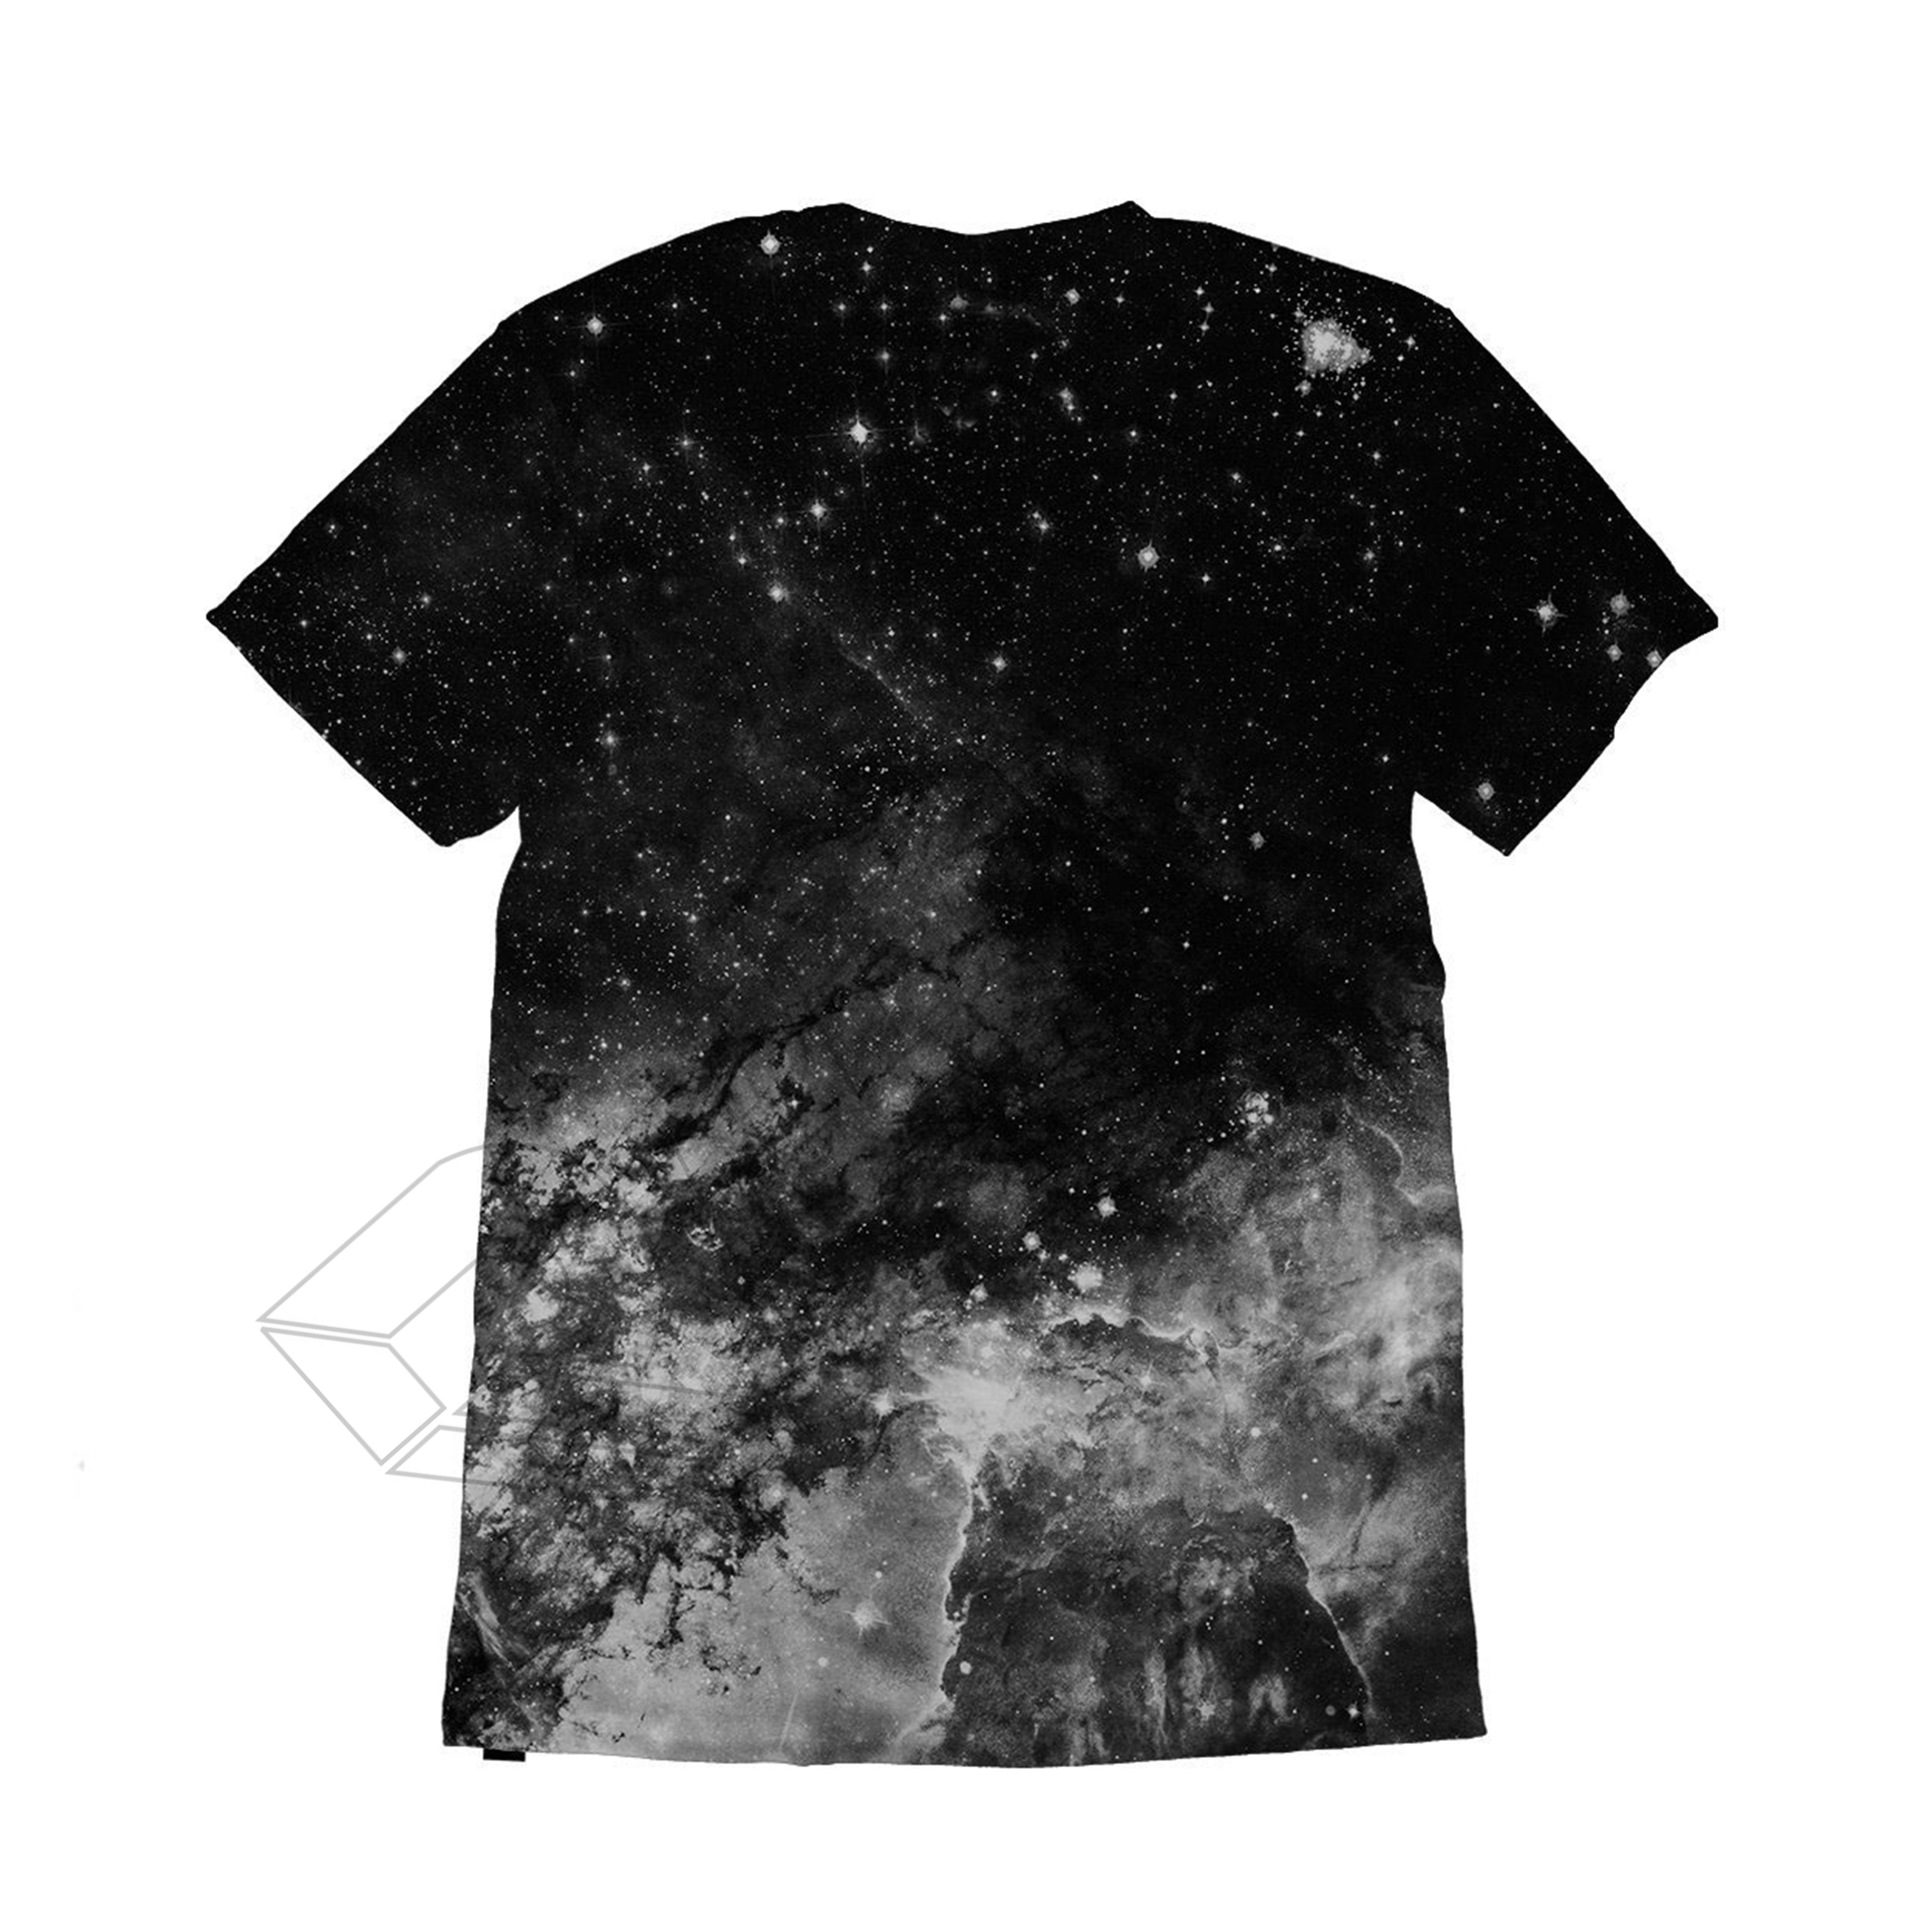 All Over Galaxy Print T Shirt Created With The Sublimation Printing